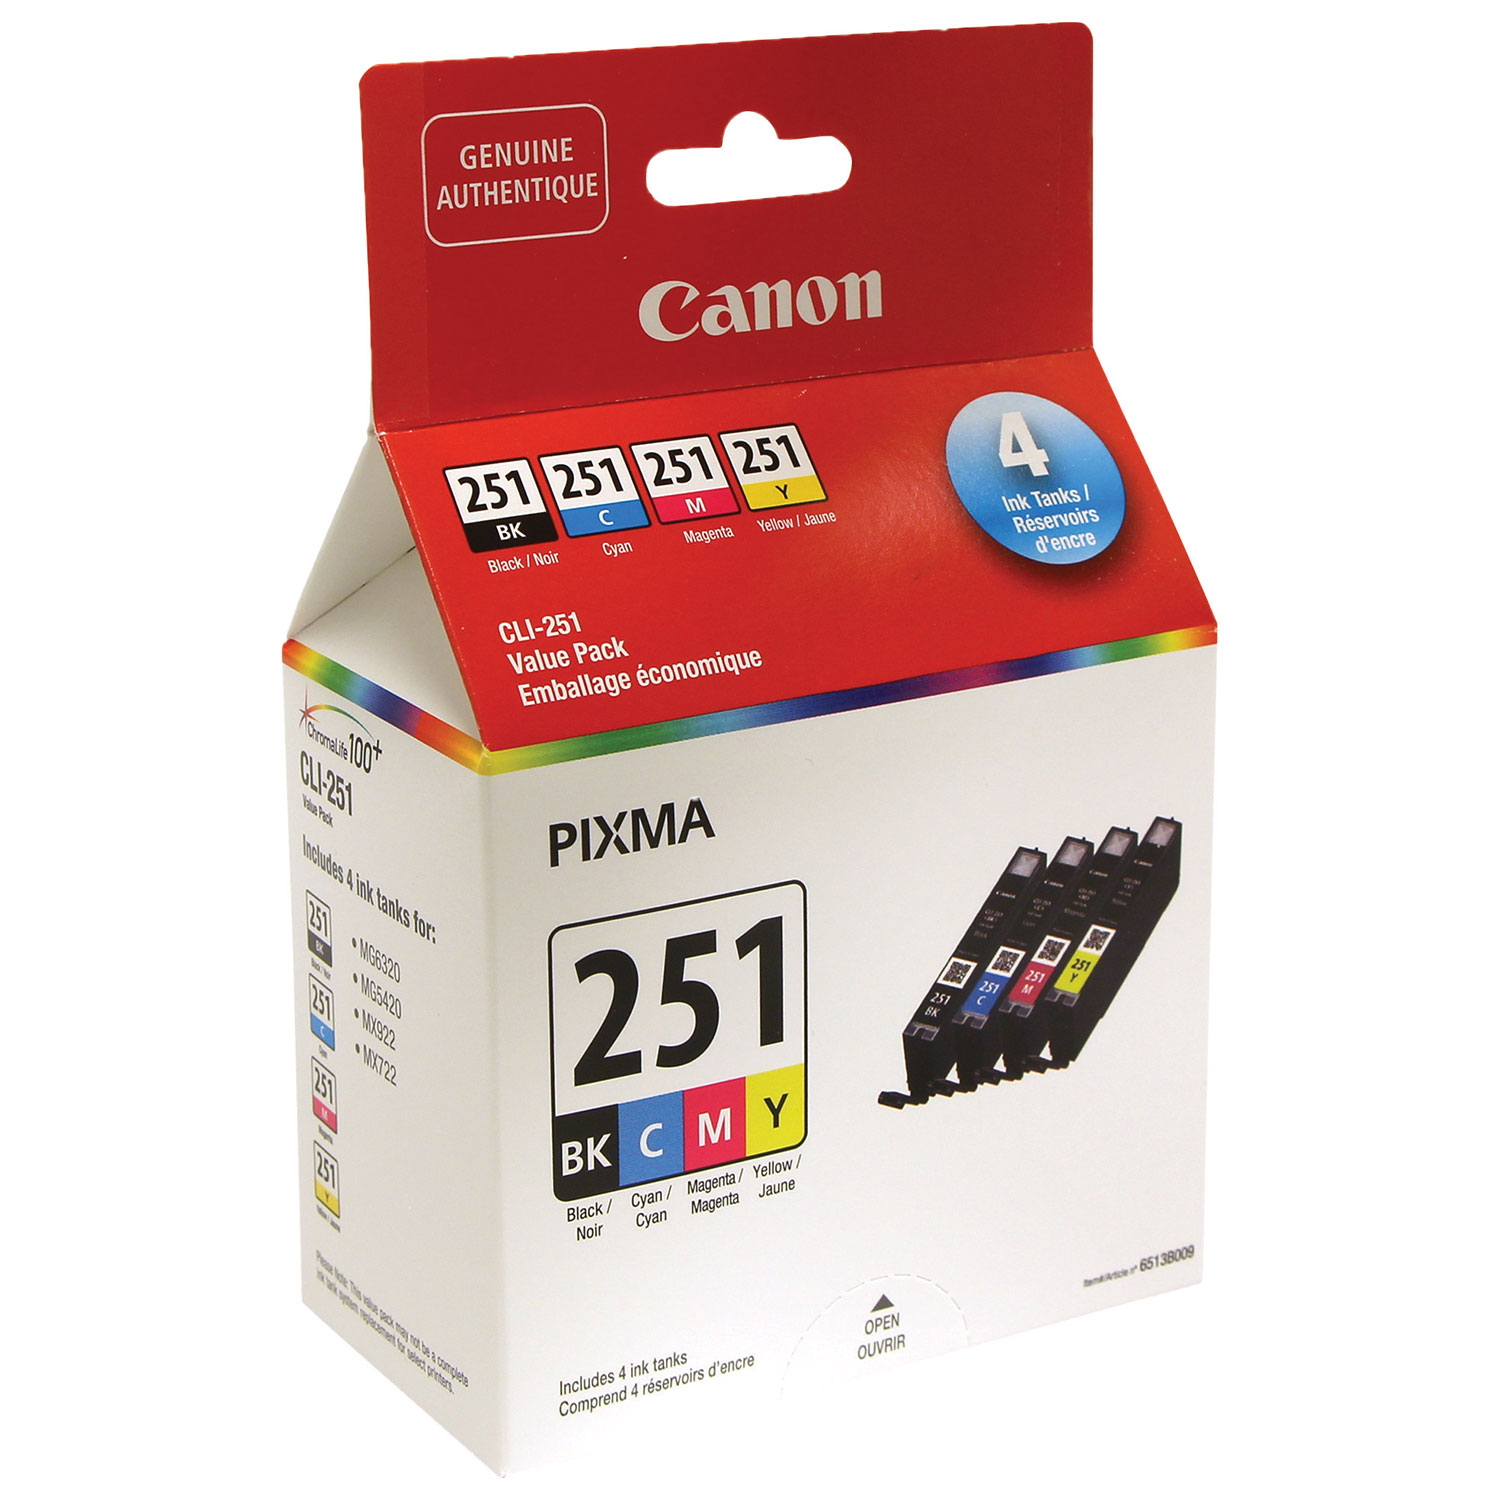 Canon Printer Ink Best Buy Canada Catridge Pg 47 Black Original 100 Pixma Cli 251 Cmyk 6513b009 4 Pack